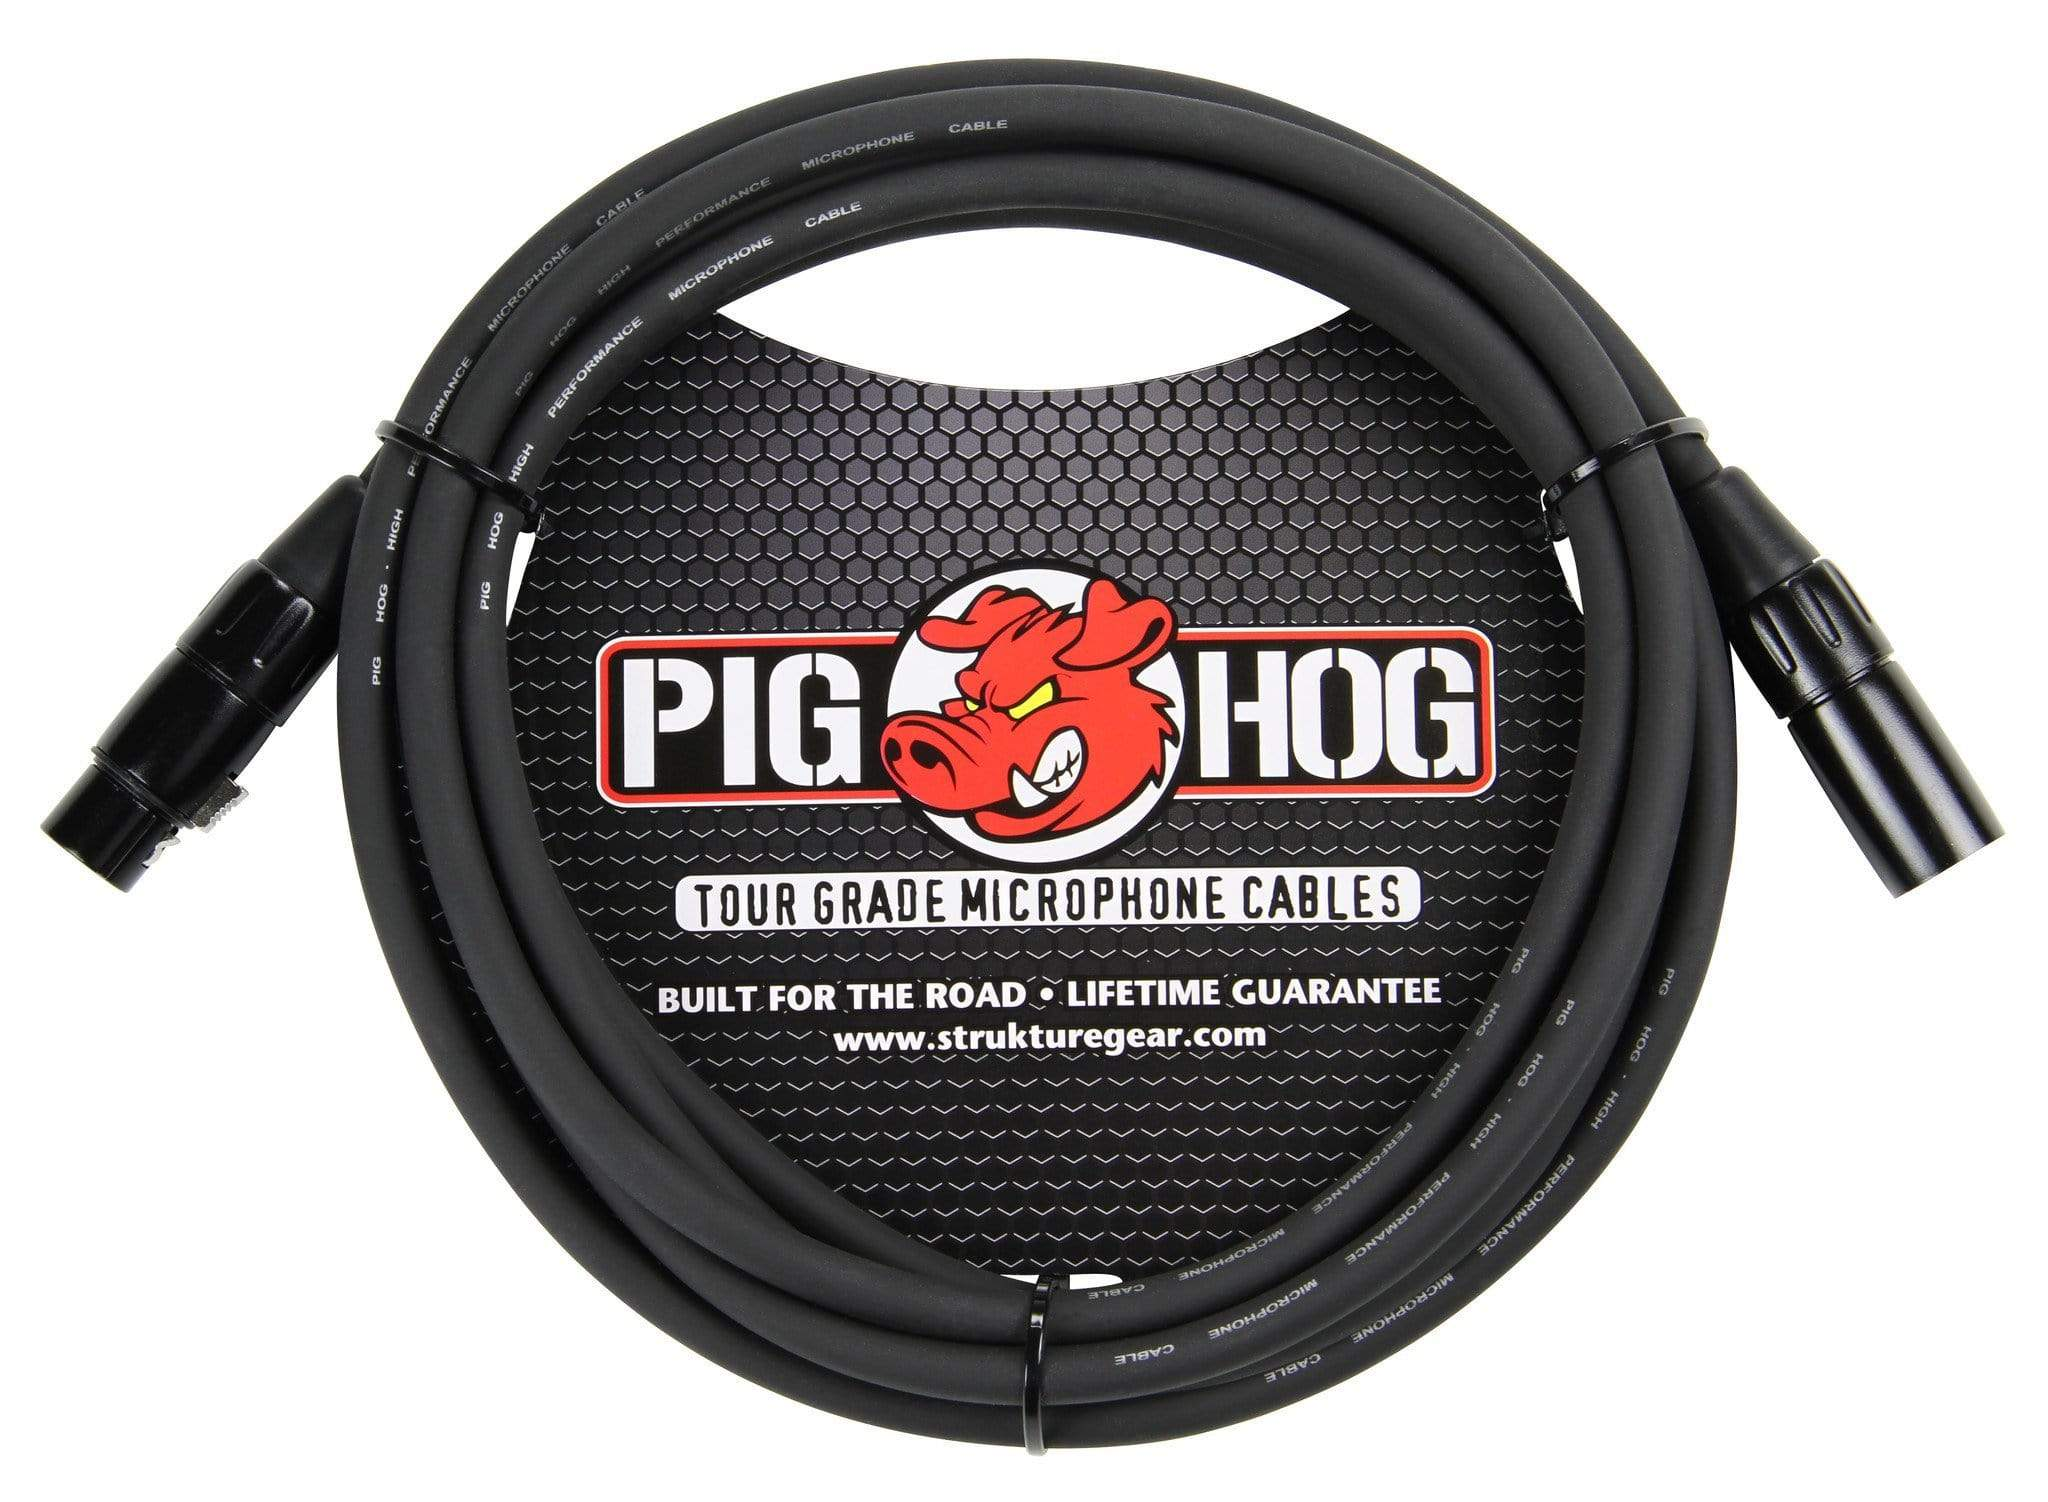 PIG HOG MICROPHONE CABLES Pig Hog 15' Foot Ft Microphone Cable XLR Lifetime 8mm Tour Grade PHM15